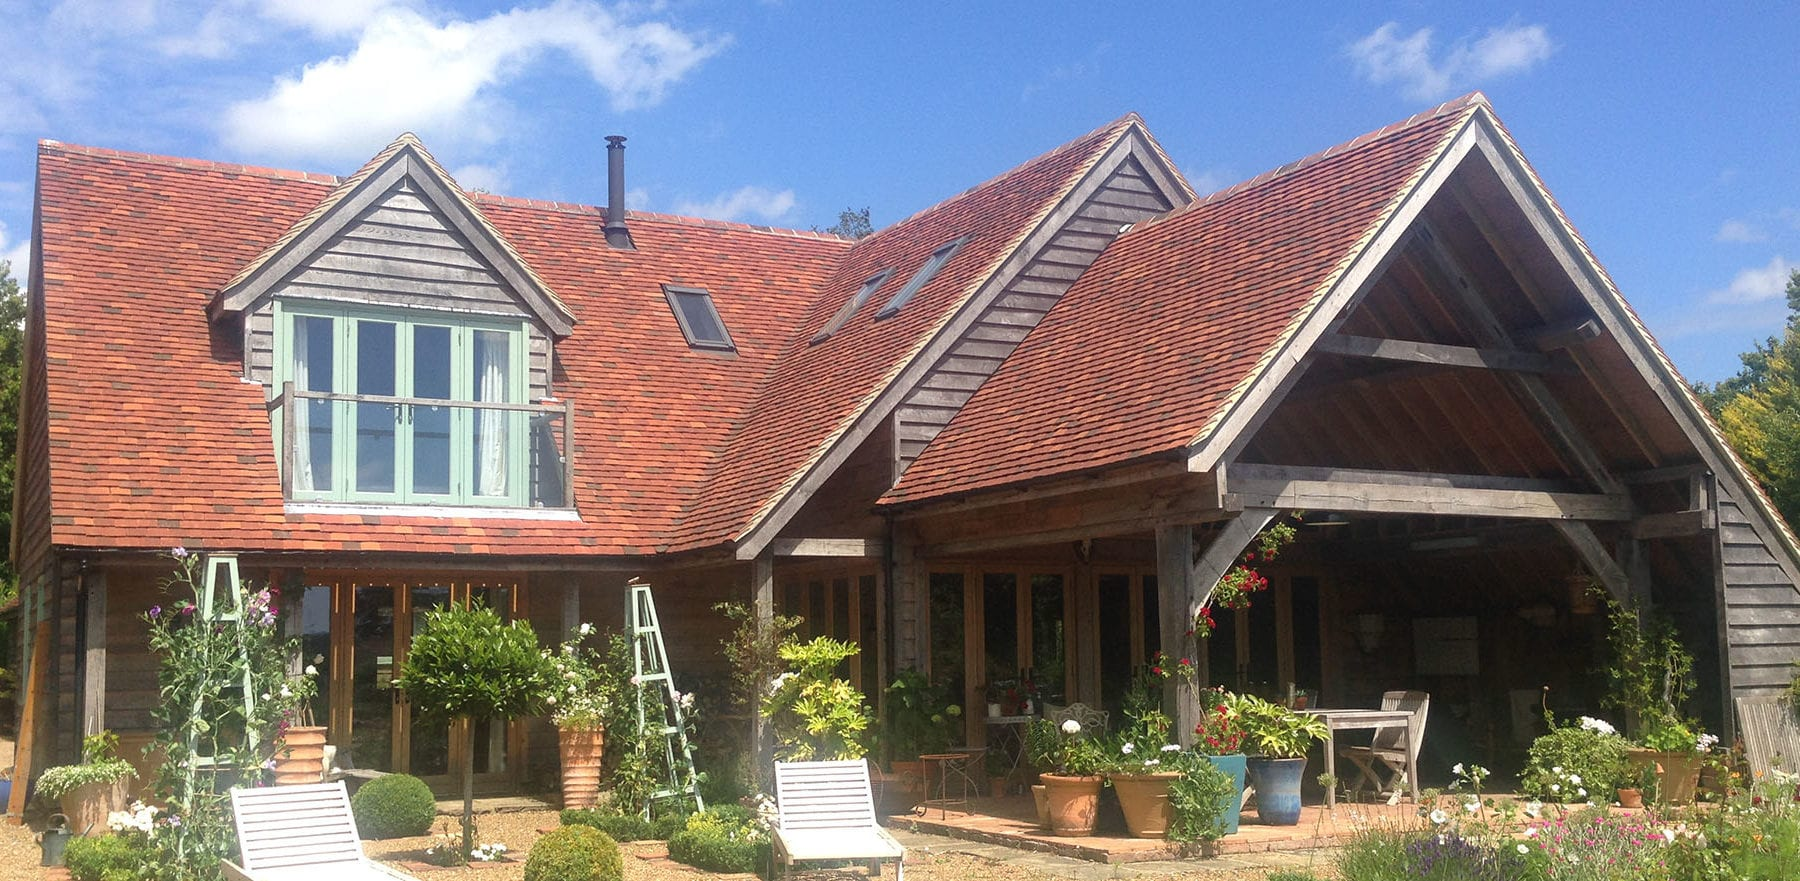 Lifestiles - Handmade Multi Clay Roof Tiles - Stephen Evans Architect, England 4